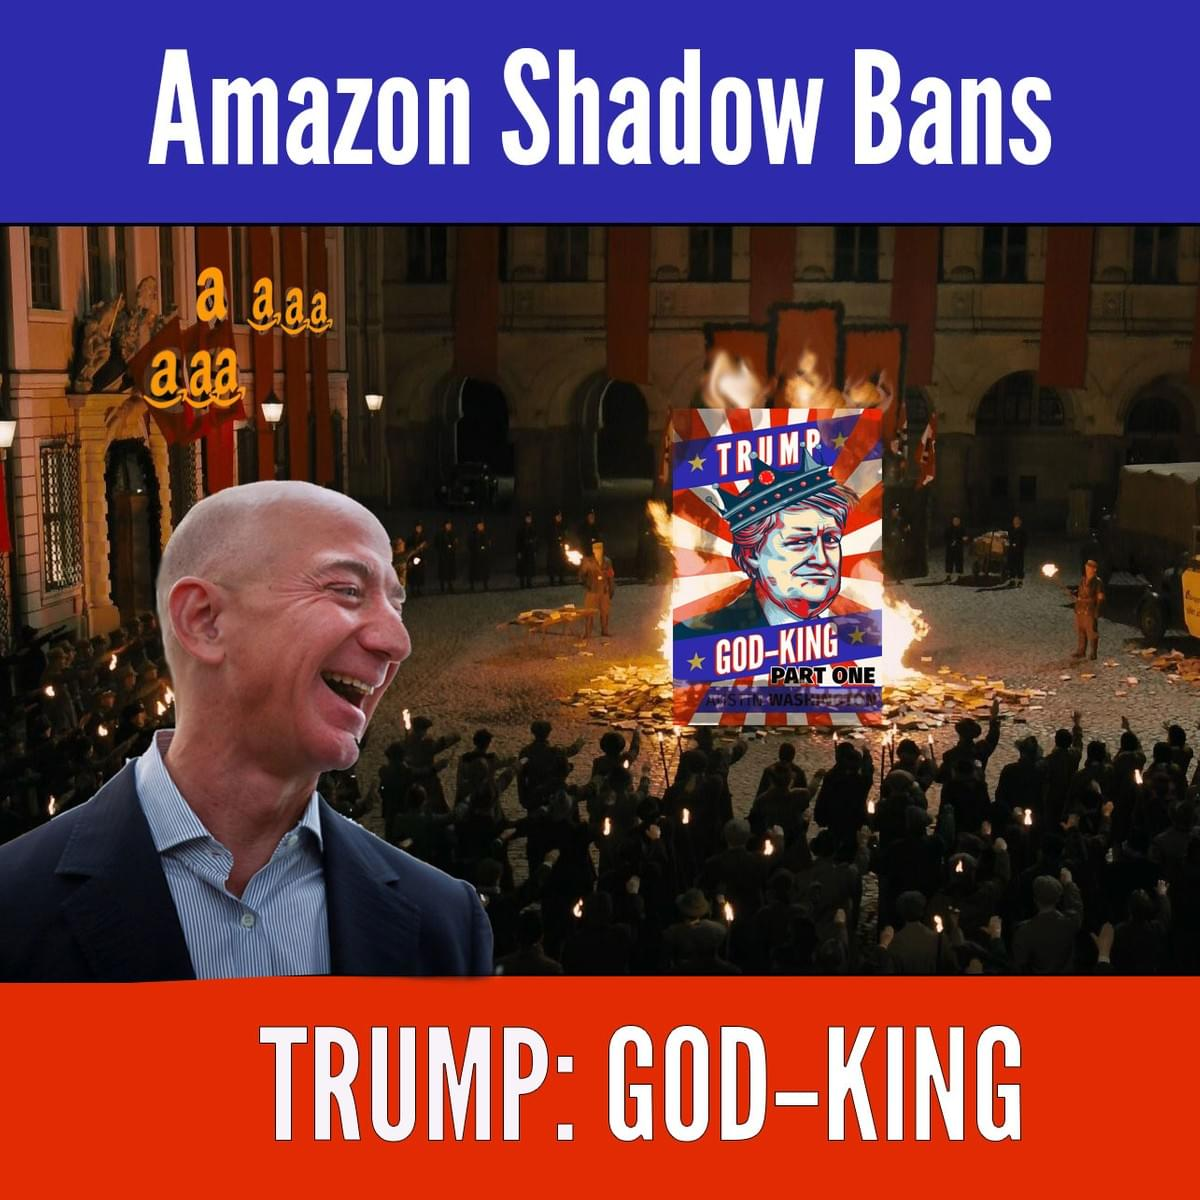 Amazon Shadow Bans Trump God King